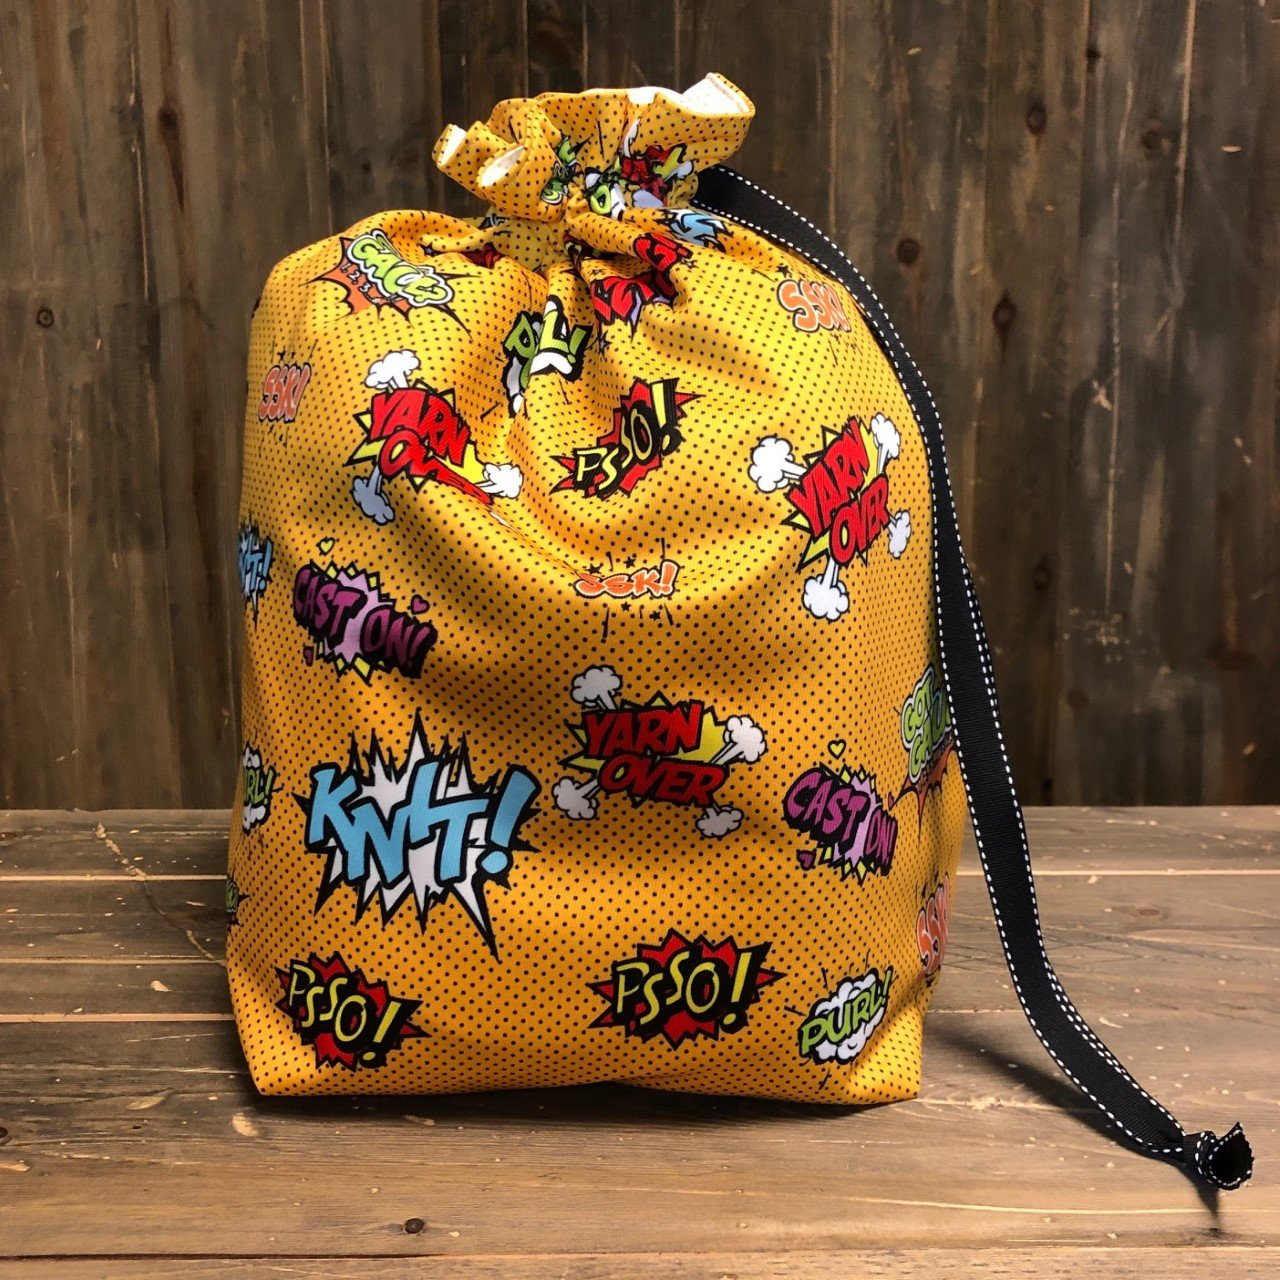 Mango Comical Knitters  - Makers' Exclusive Project Bag